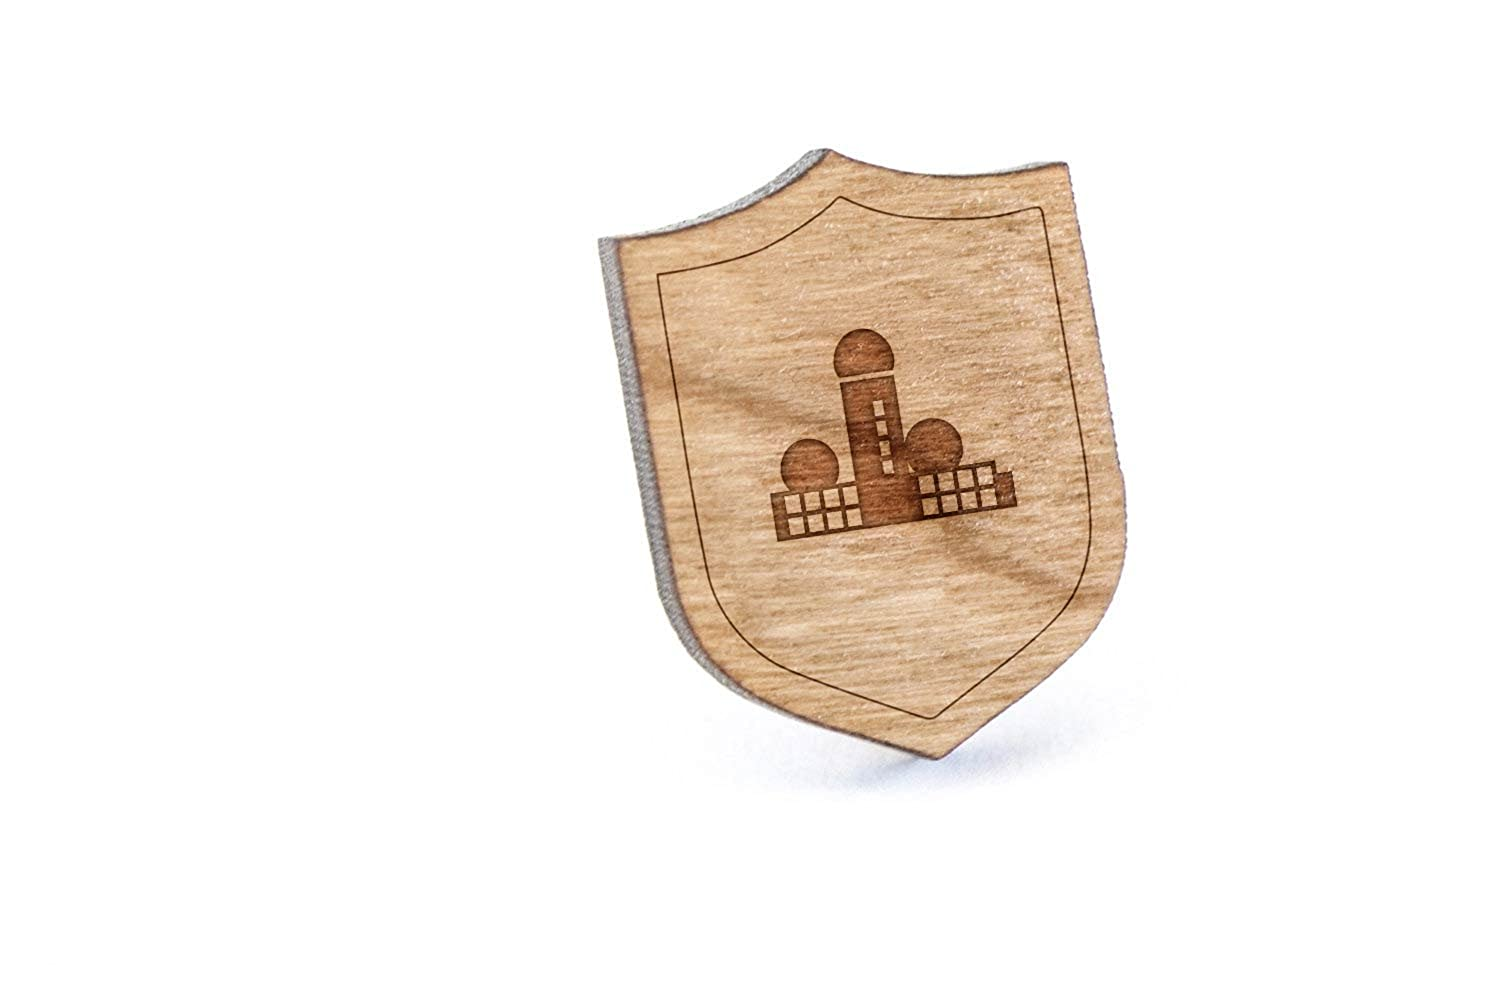 Teufelsberg Lapel Pin, Wooden Pin And Tie Tack | Rustic And Minimalistic Groomsmen Gifts And Wedding Accessories